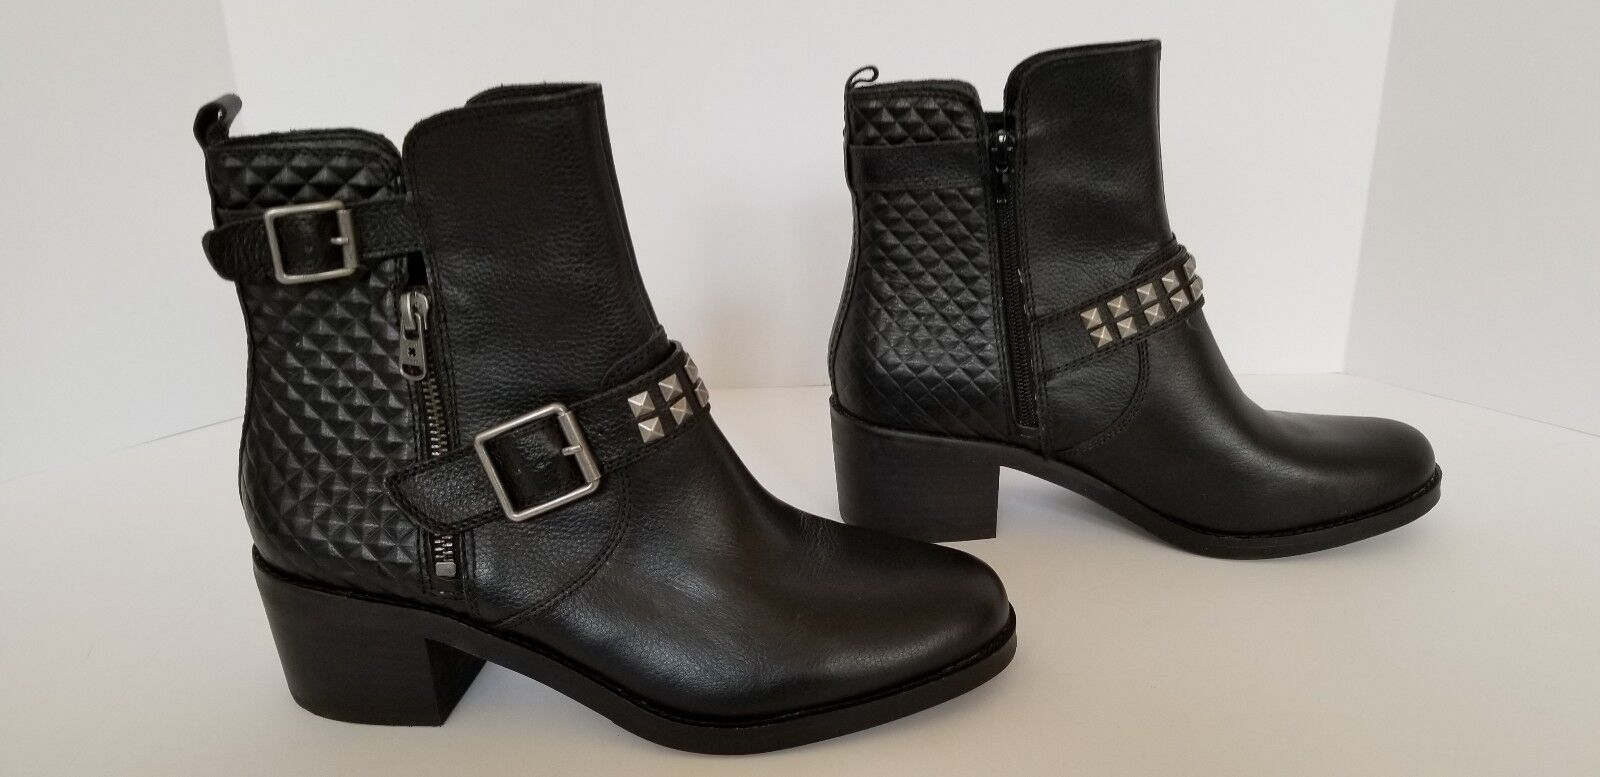 Lucky Brand donna's Dimensione 9.5M Cantini2 Pyramid Stud avvioies nero Leather New